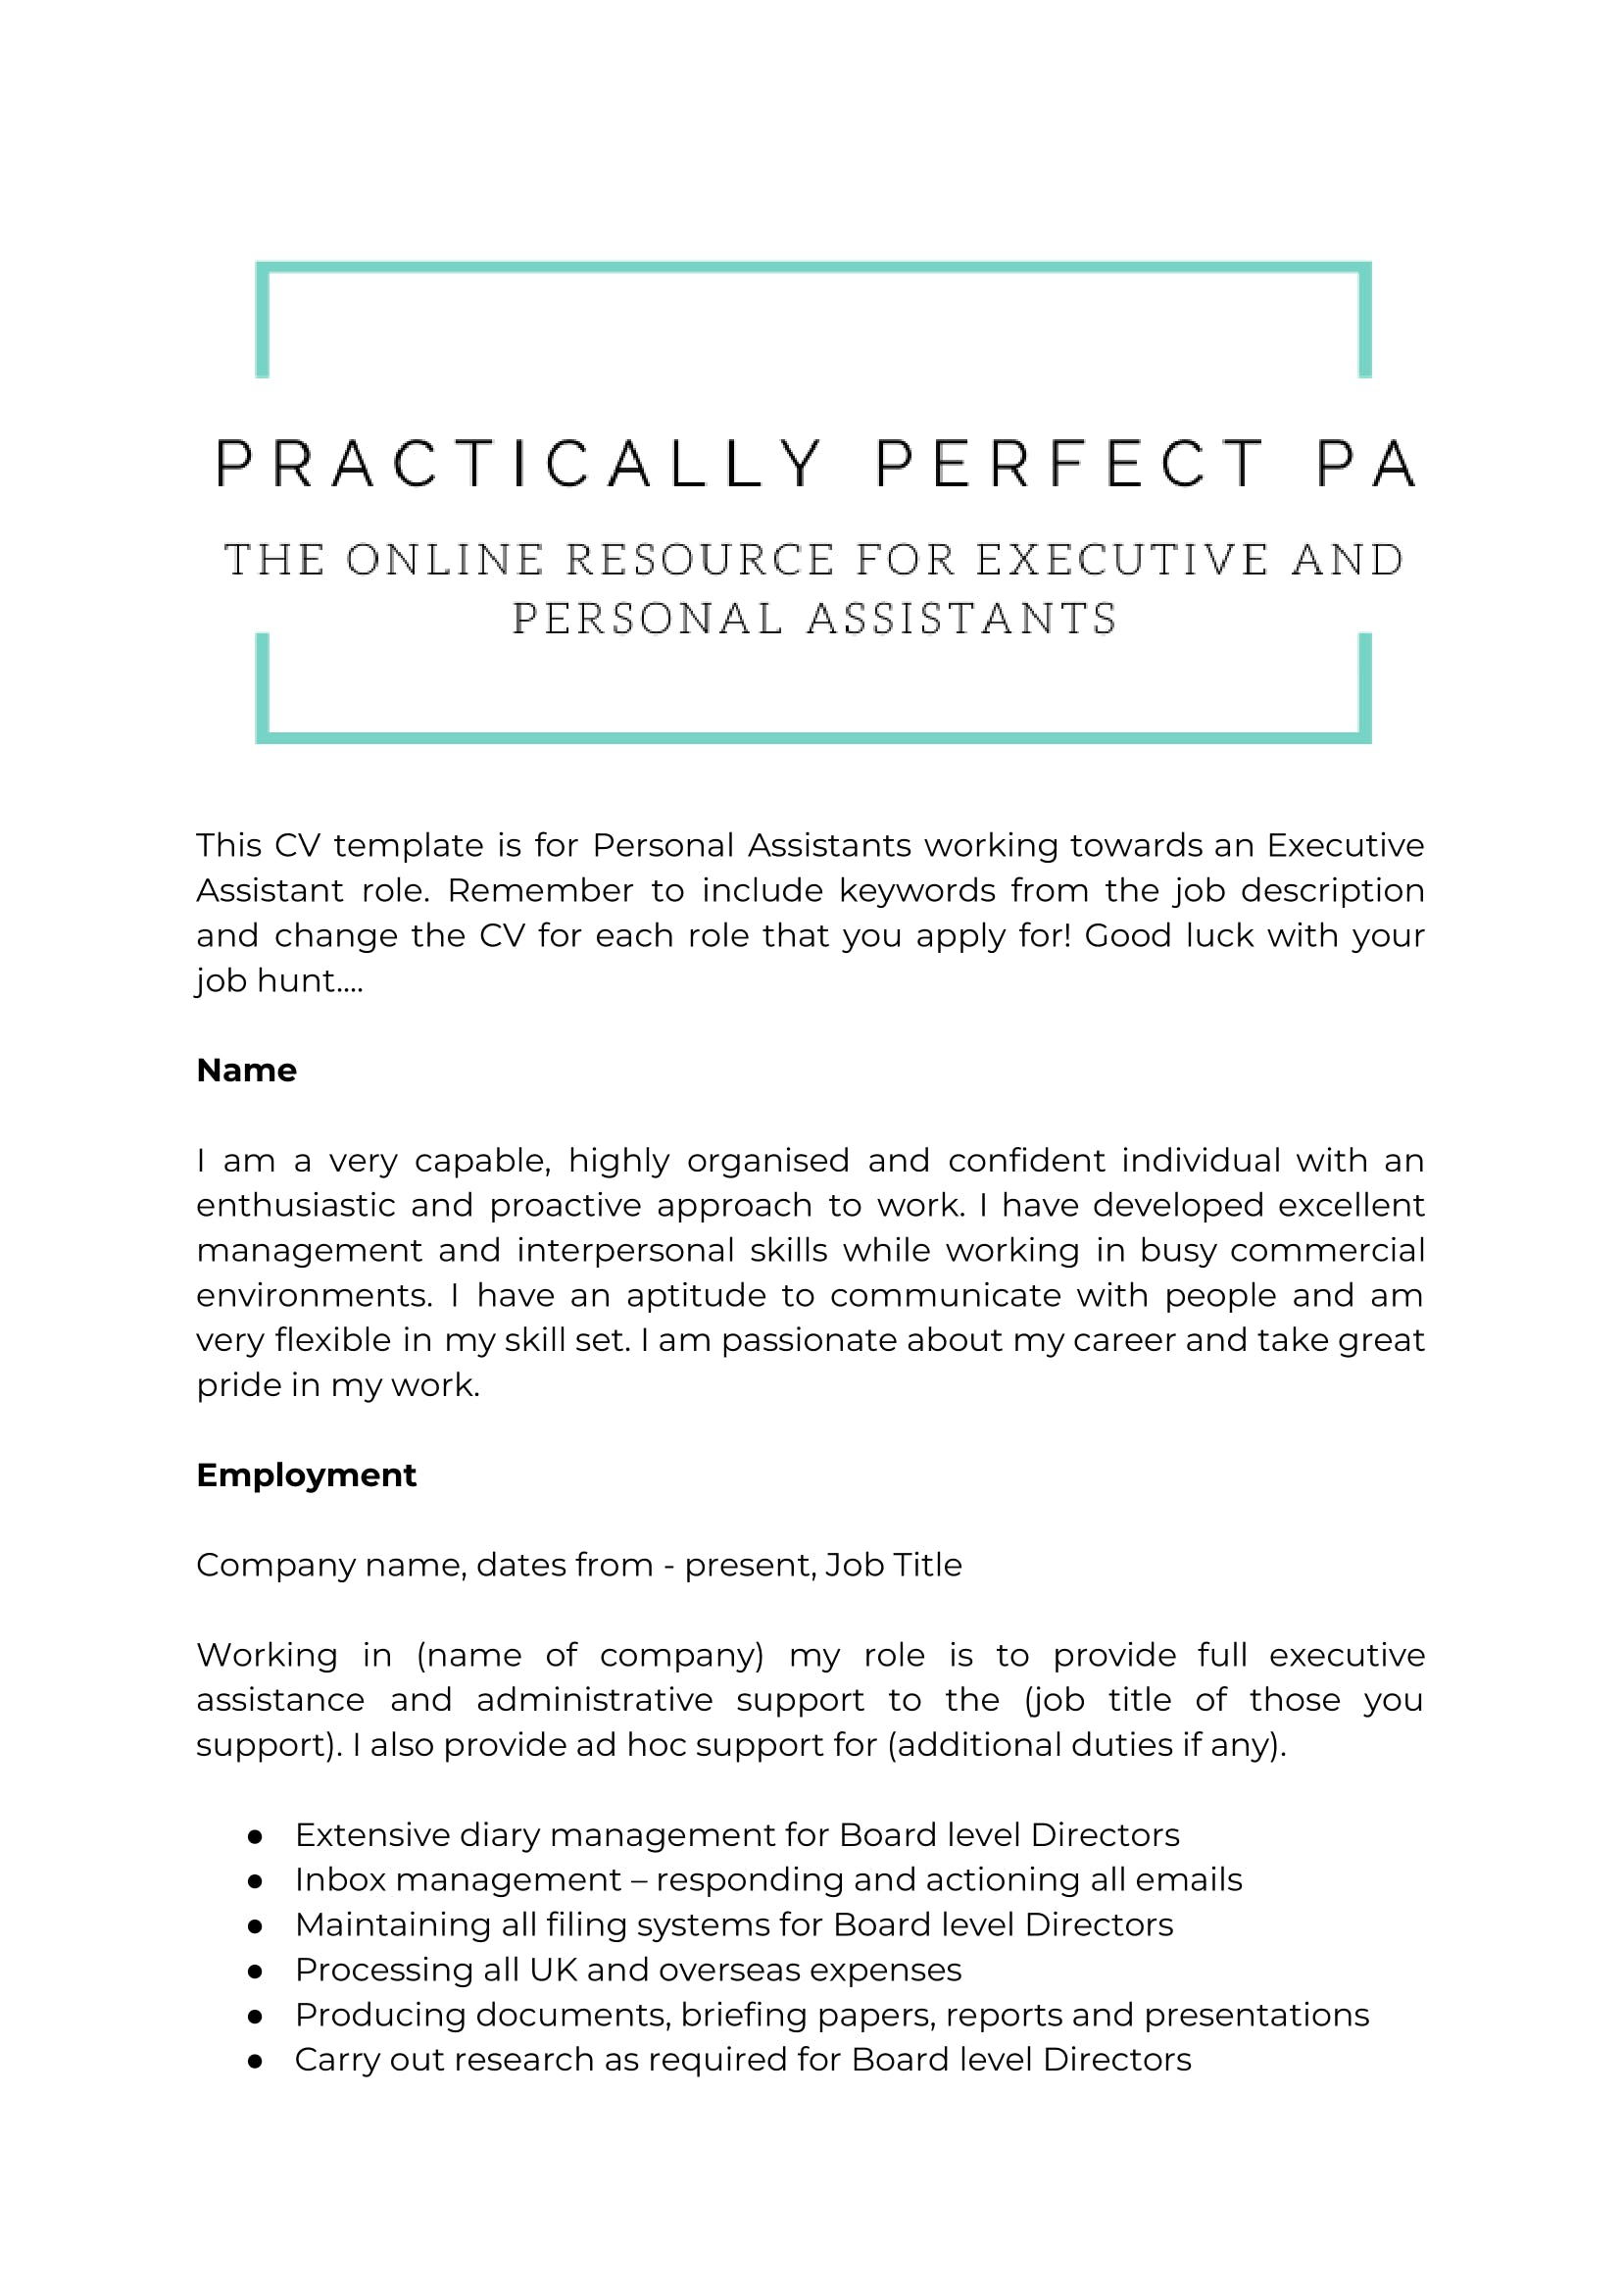 cv template for executive and personal assistants assistant job duties resume scanner Resume Personal Assistant Job Duties For Resume